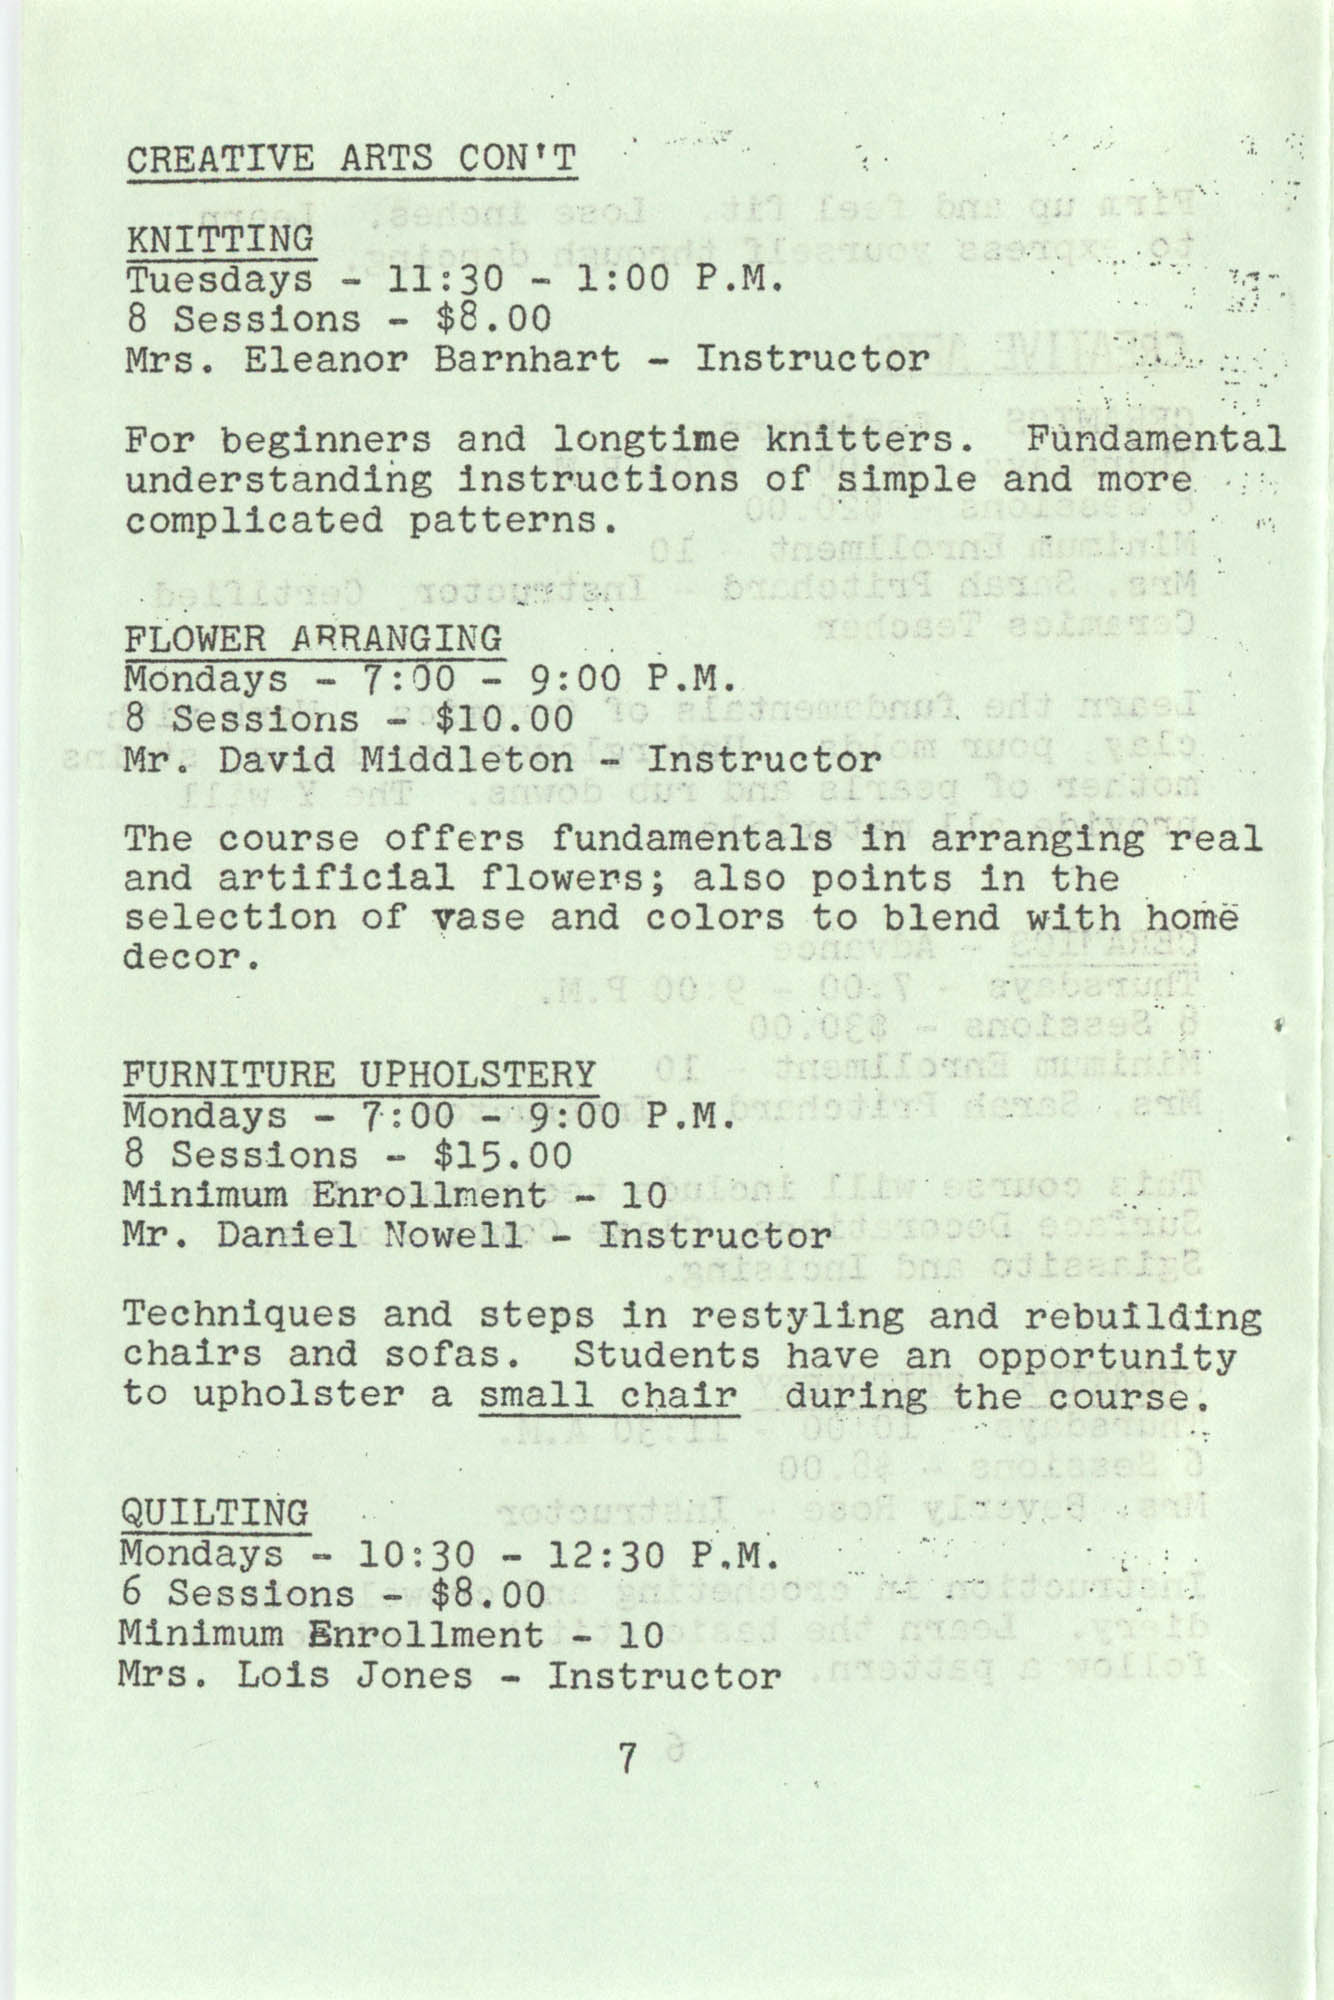 Spring 1975 Schedule, Y.W.C.A. of Greater Charleston, Page 7